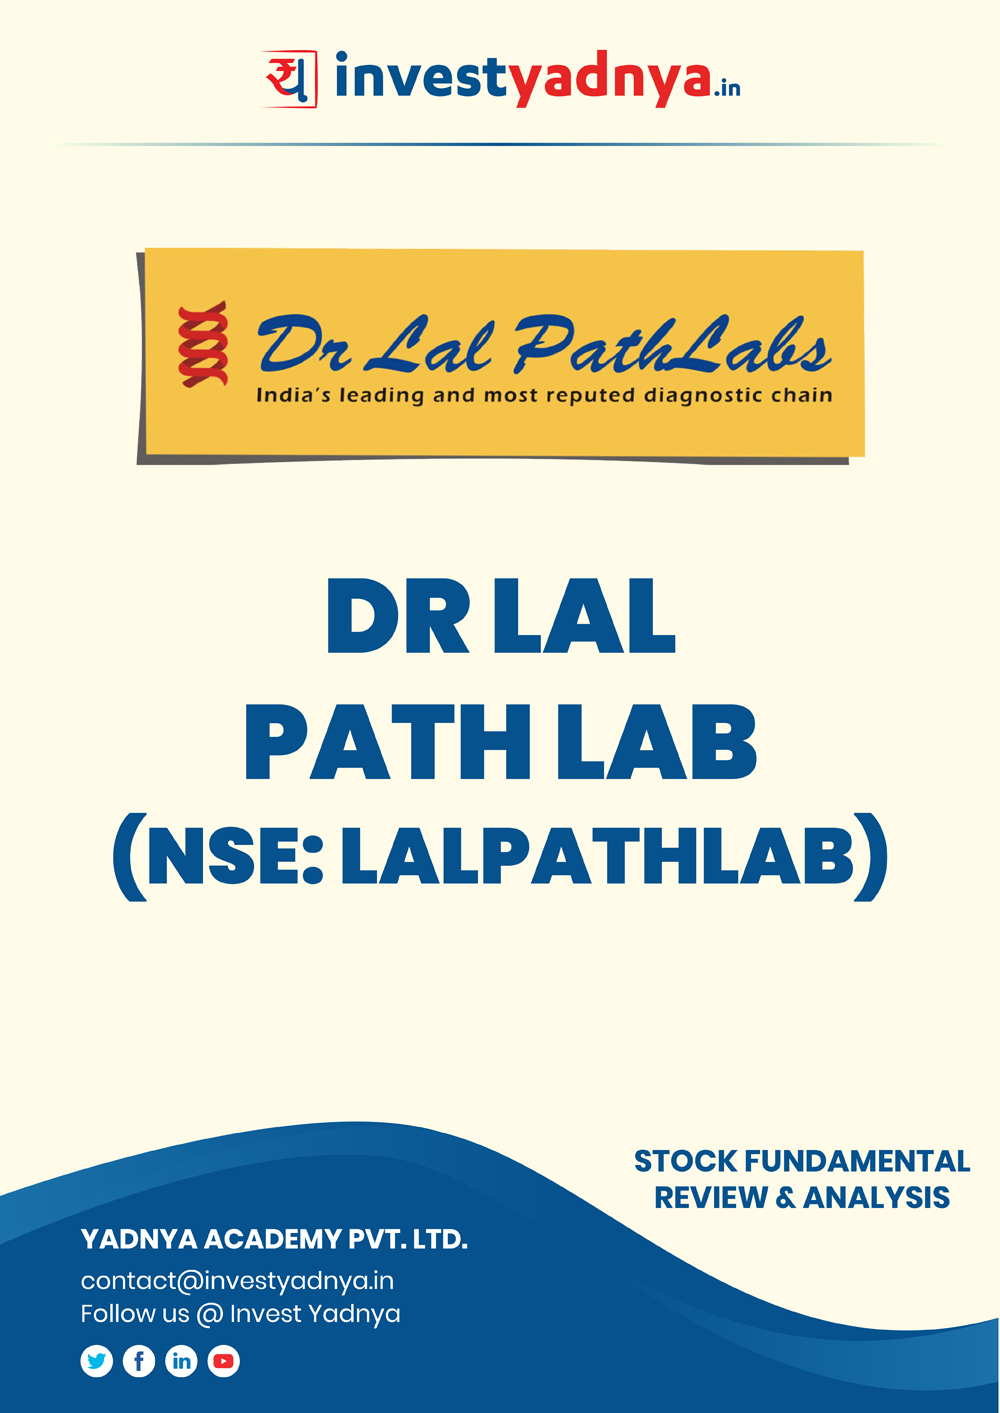 Dr. Lal Pathlabs Ltd. company/Stock Review & Analysis based on Q12019-20 and FY2018-19 data. The book contains Fundamental Analysis of the company considering both Quantitative (Financial) and Qualitative parameters. Book is updated as on 20th Oct, 2019.